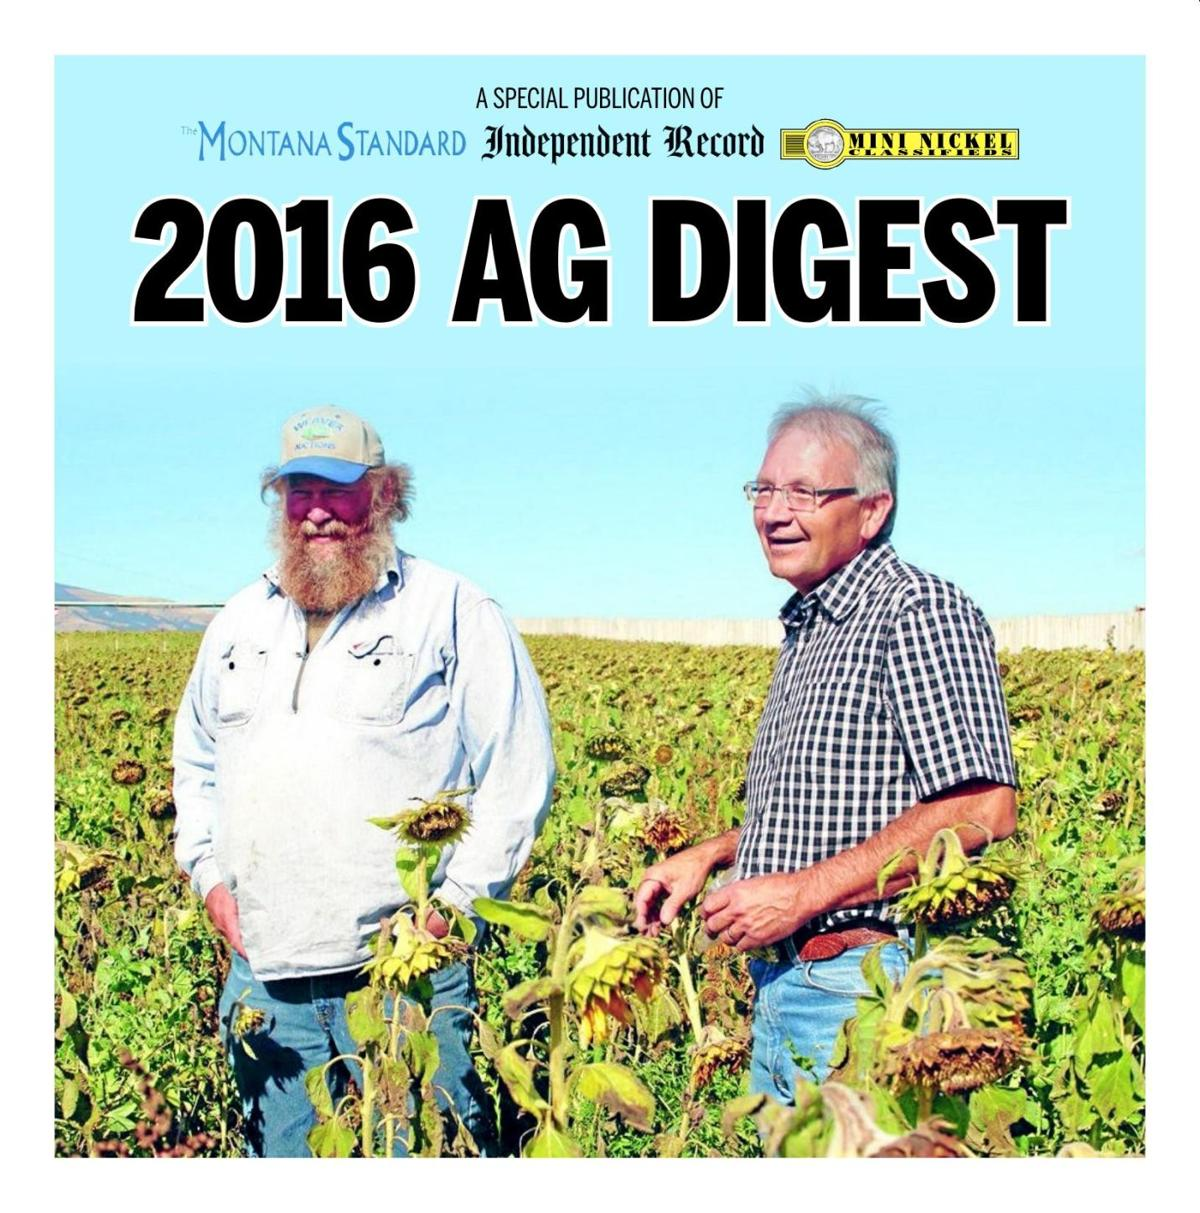 The 2016 Ag Digest